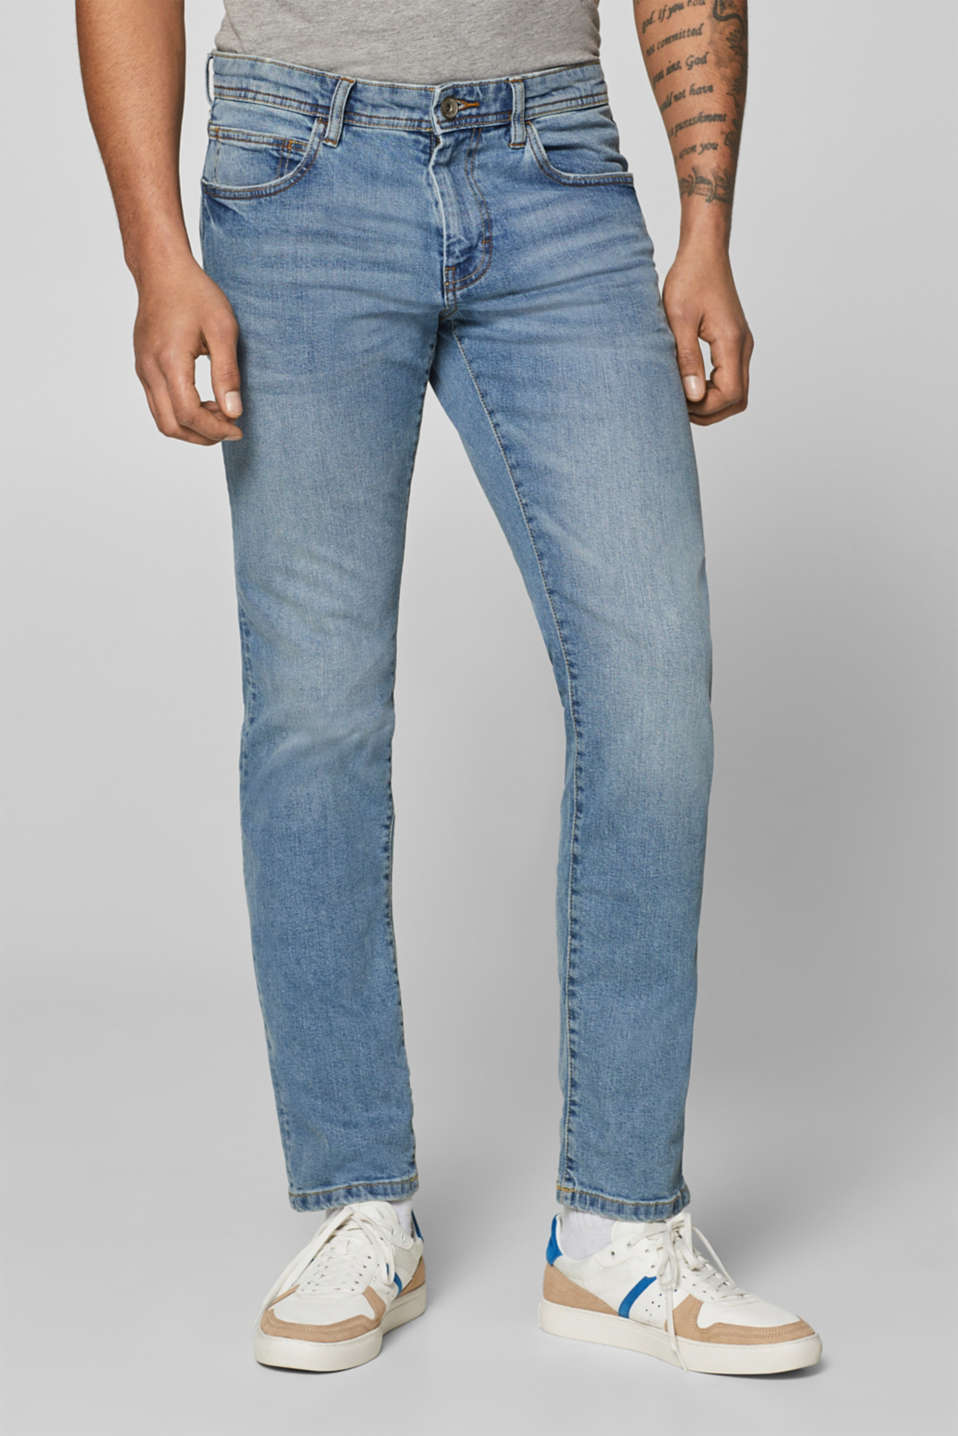 Esprit - Stretchjeans met washed-out effect